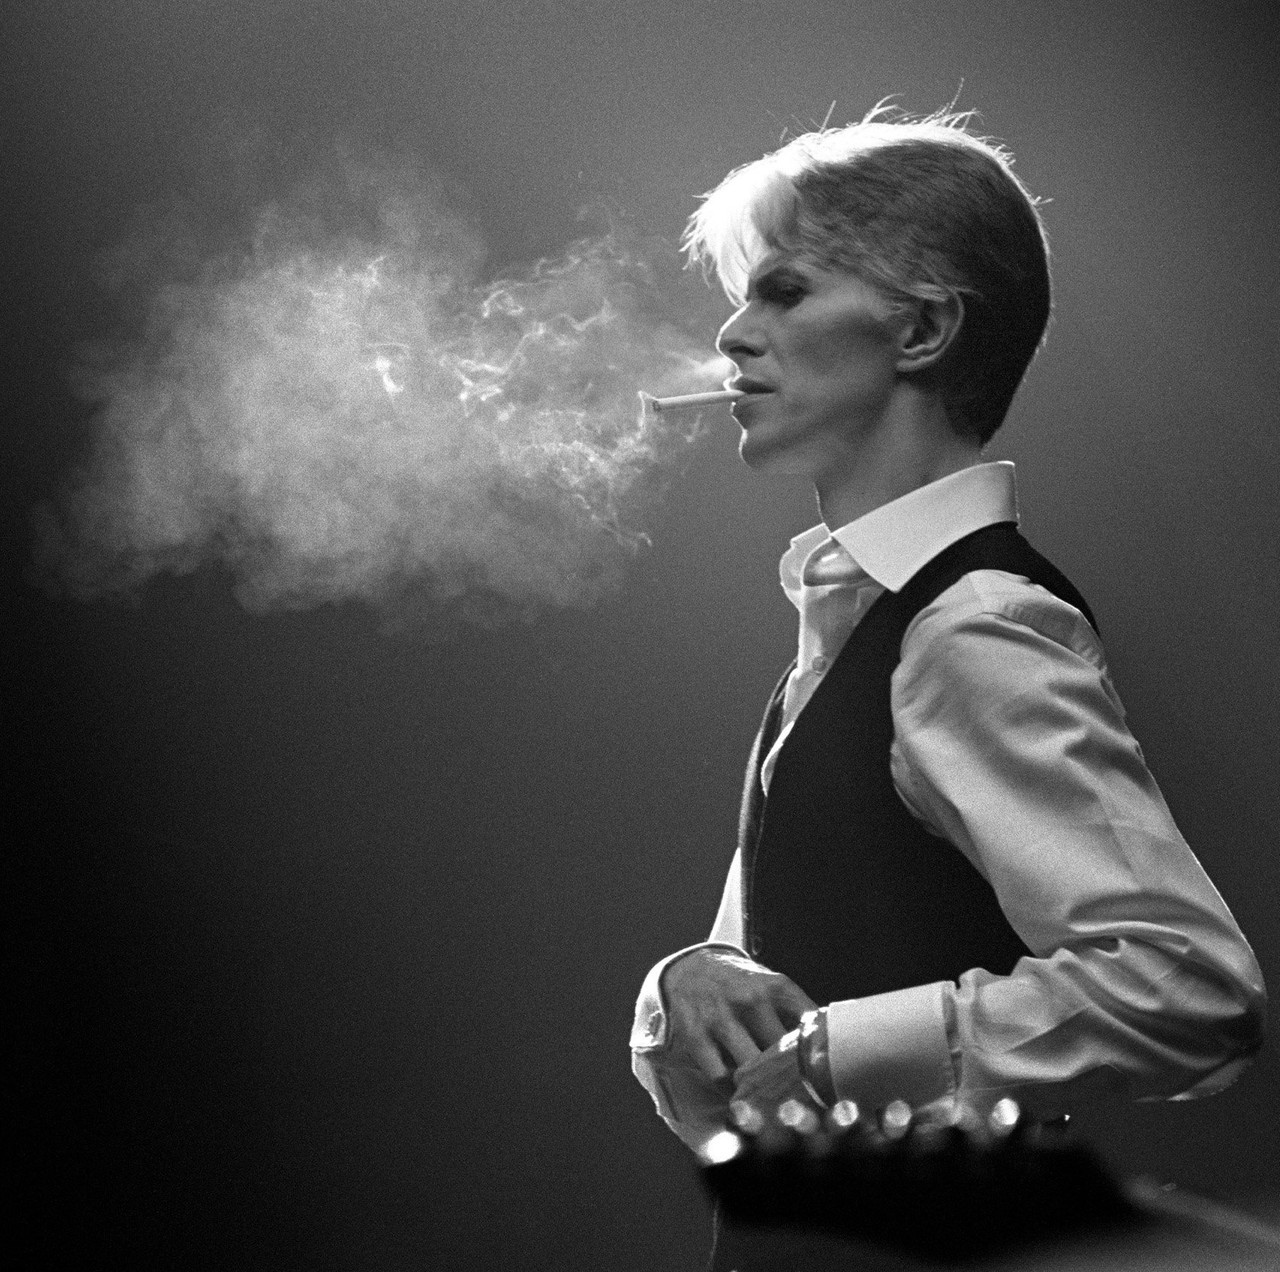 Bowie66